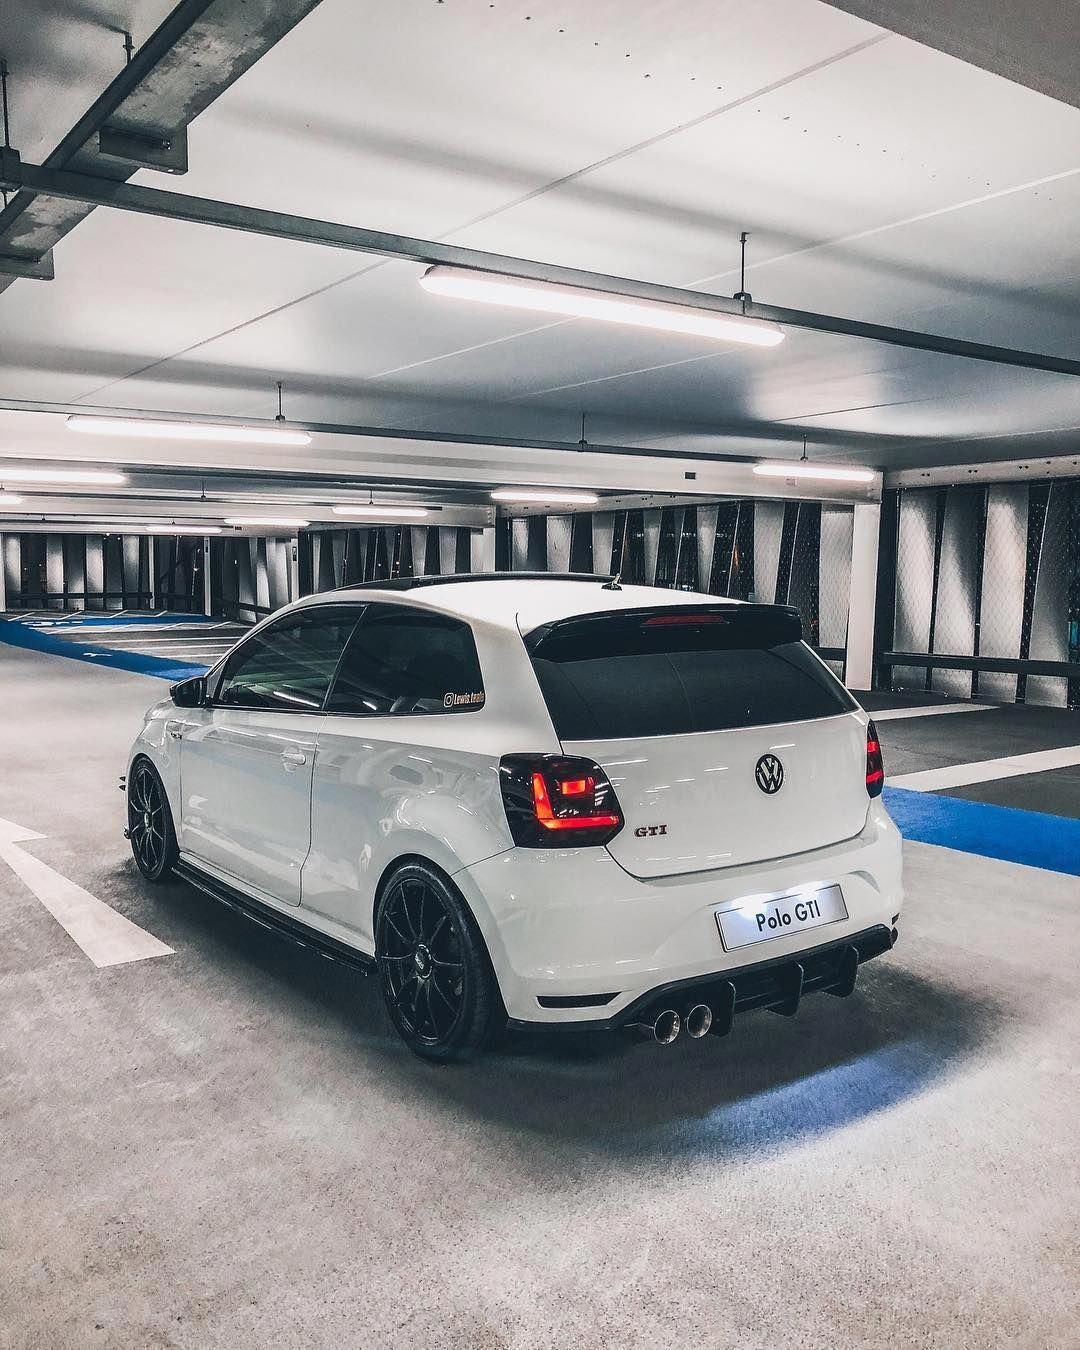 Best Car Park Lighting Ever. #polo6cgti @lewis.teale On